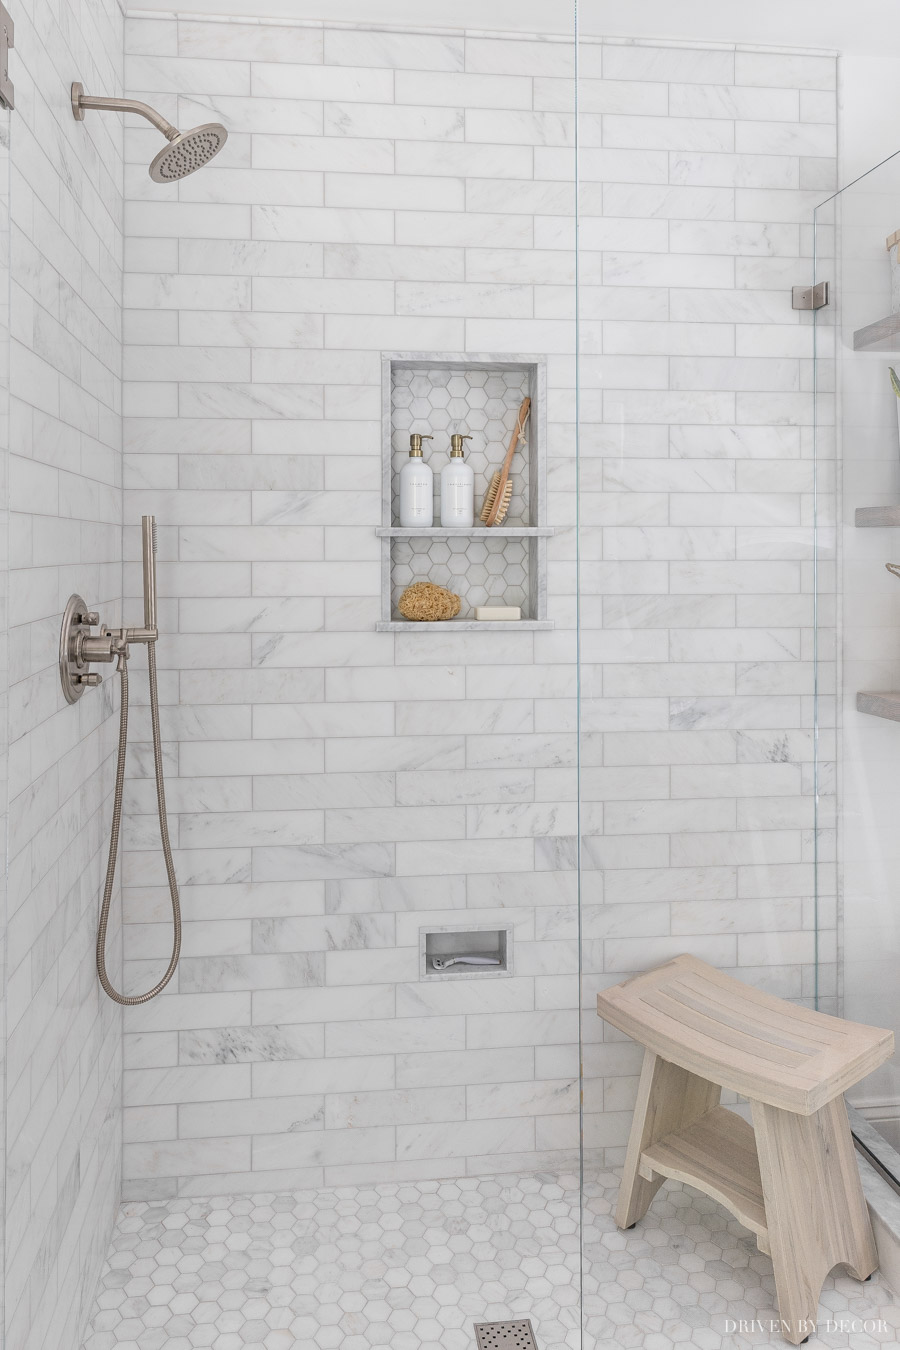 I LOVE the marble in our bathroom shower!